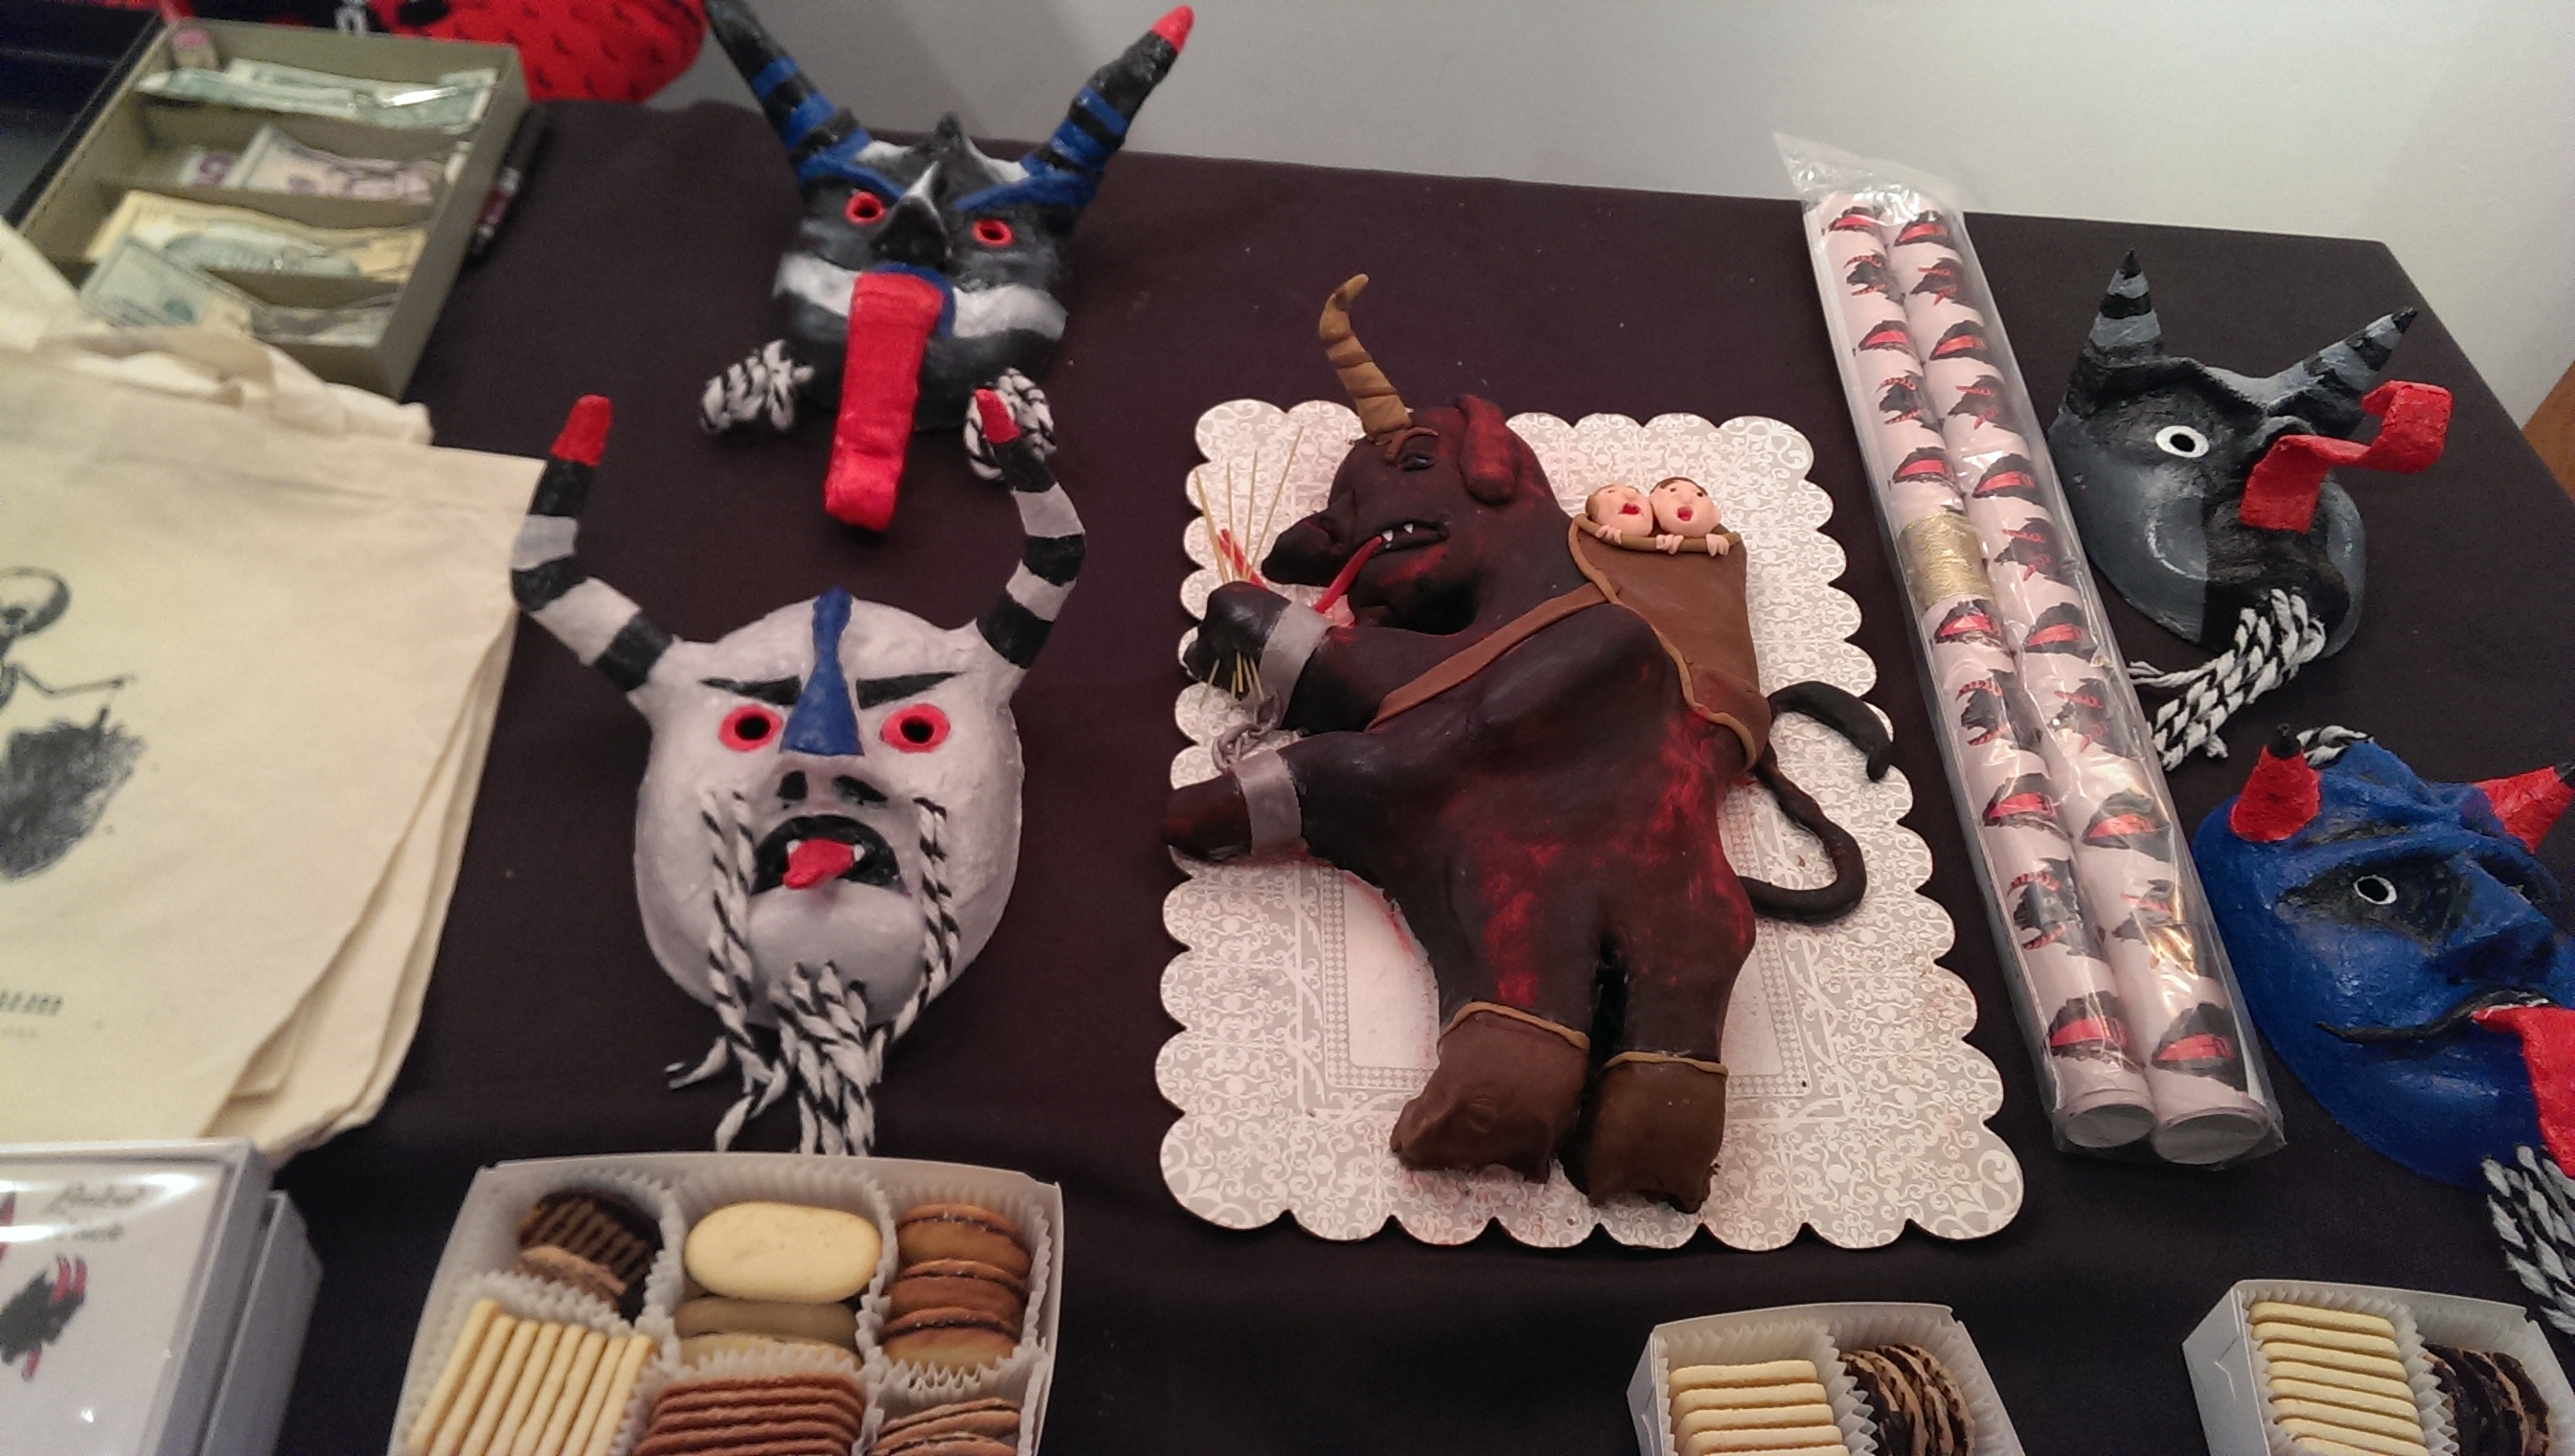 A Krampus cake at Krampusfest at the Morbid Anatomy Library in Brooklyn.